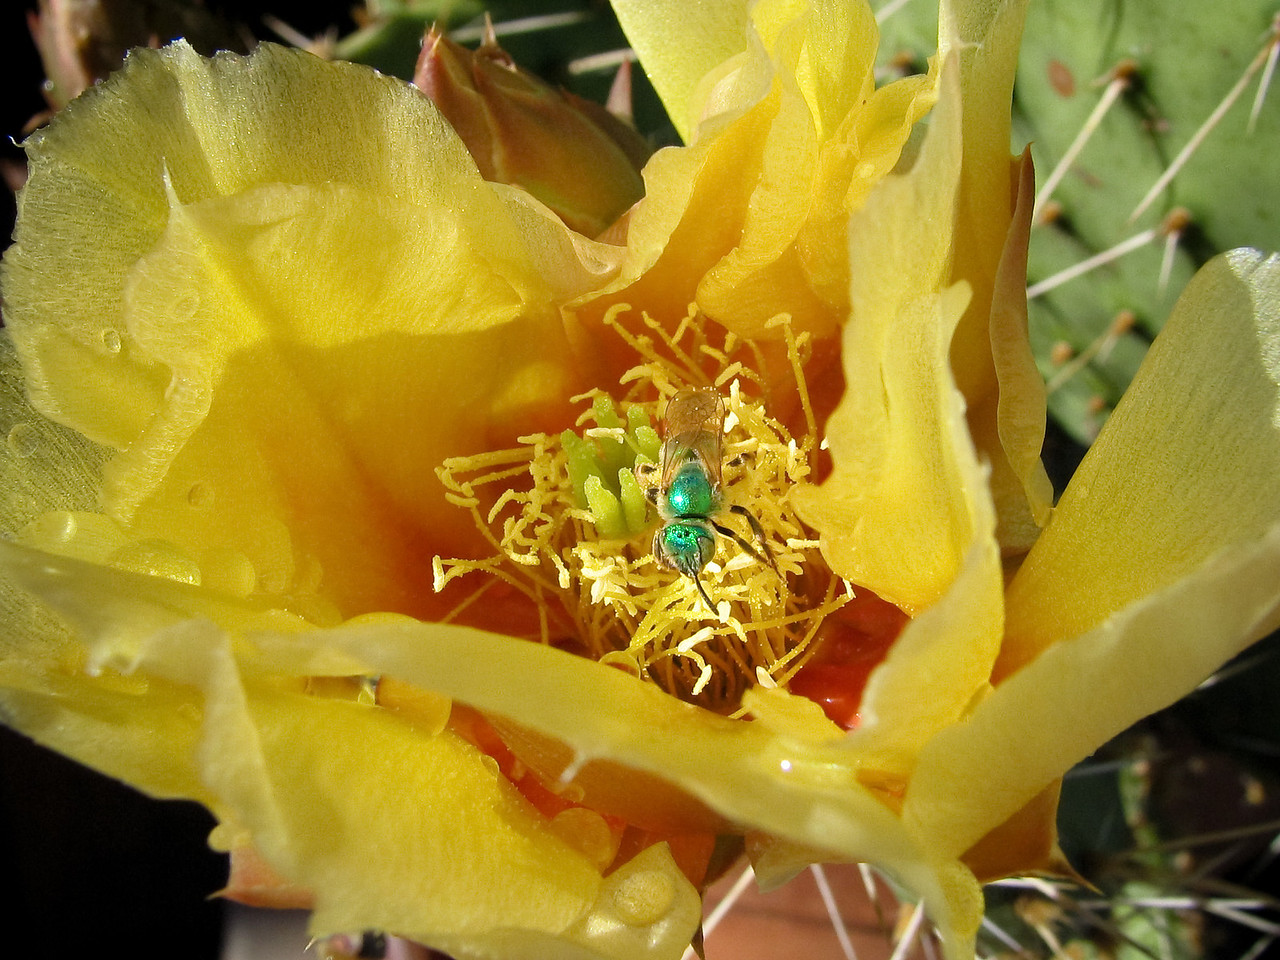 Macro shot of a cactus flower with a funky green bug crawling around inside.<br /> <br /> Location: Parkdale, Oregon<br /> <br /> Lens used: n/a (Canon S1 IS point-and-shoot)